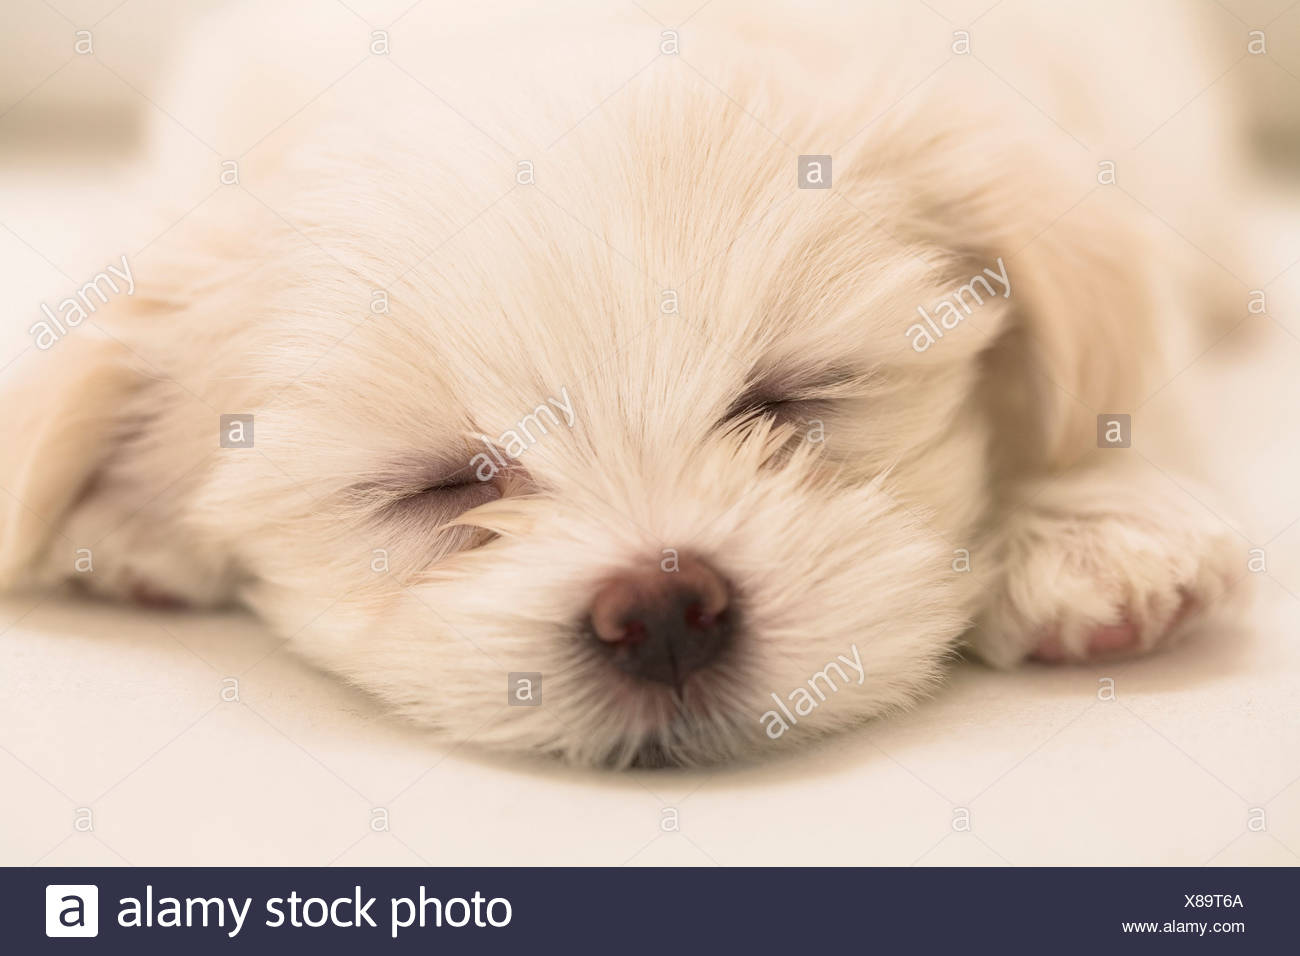 Close Up Of A Maltese Puppy Sleeping Stock Photo Alamy